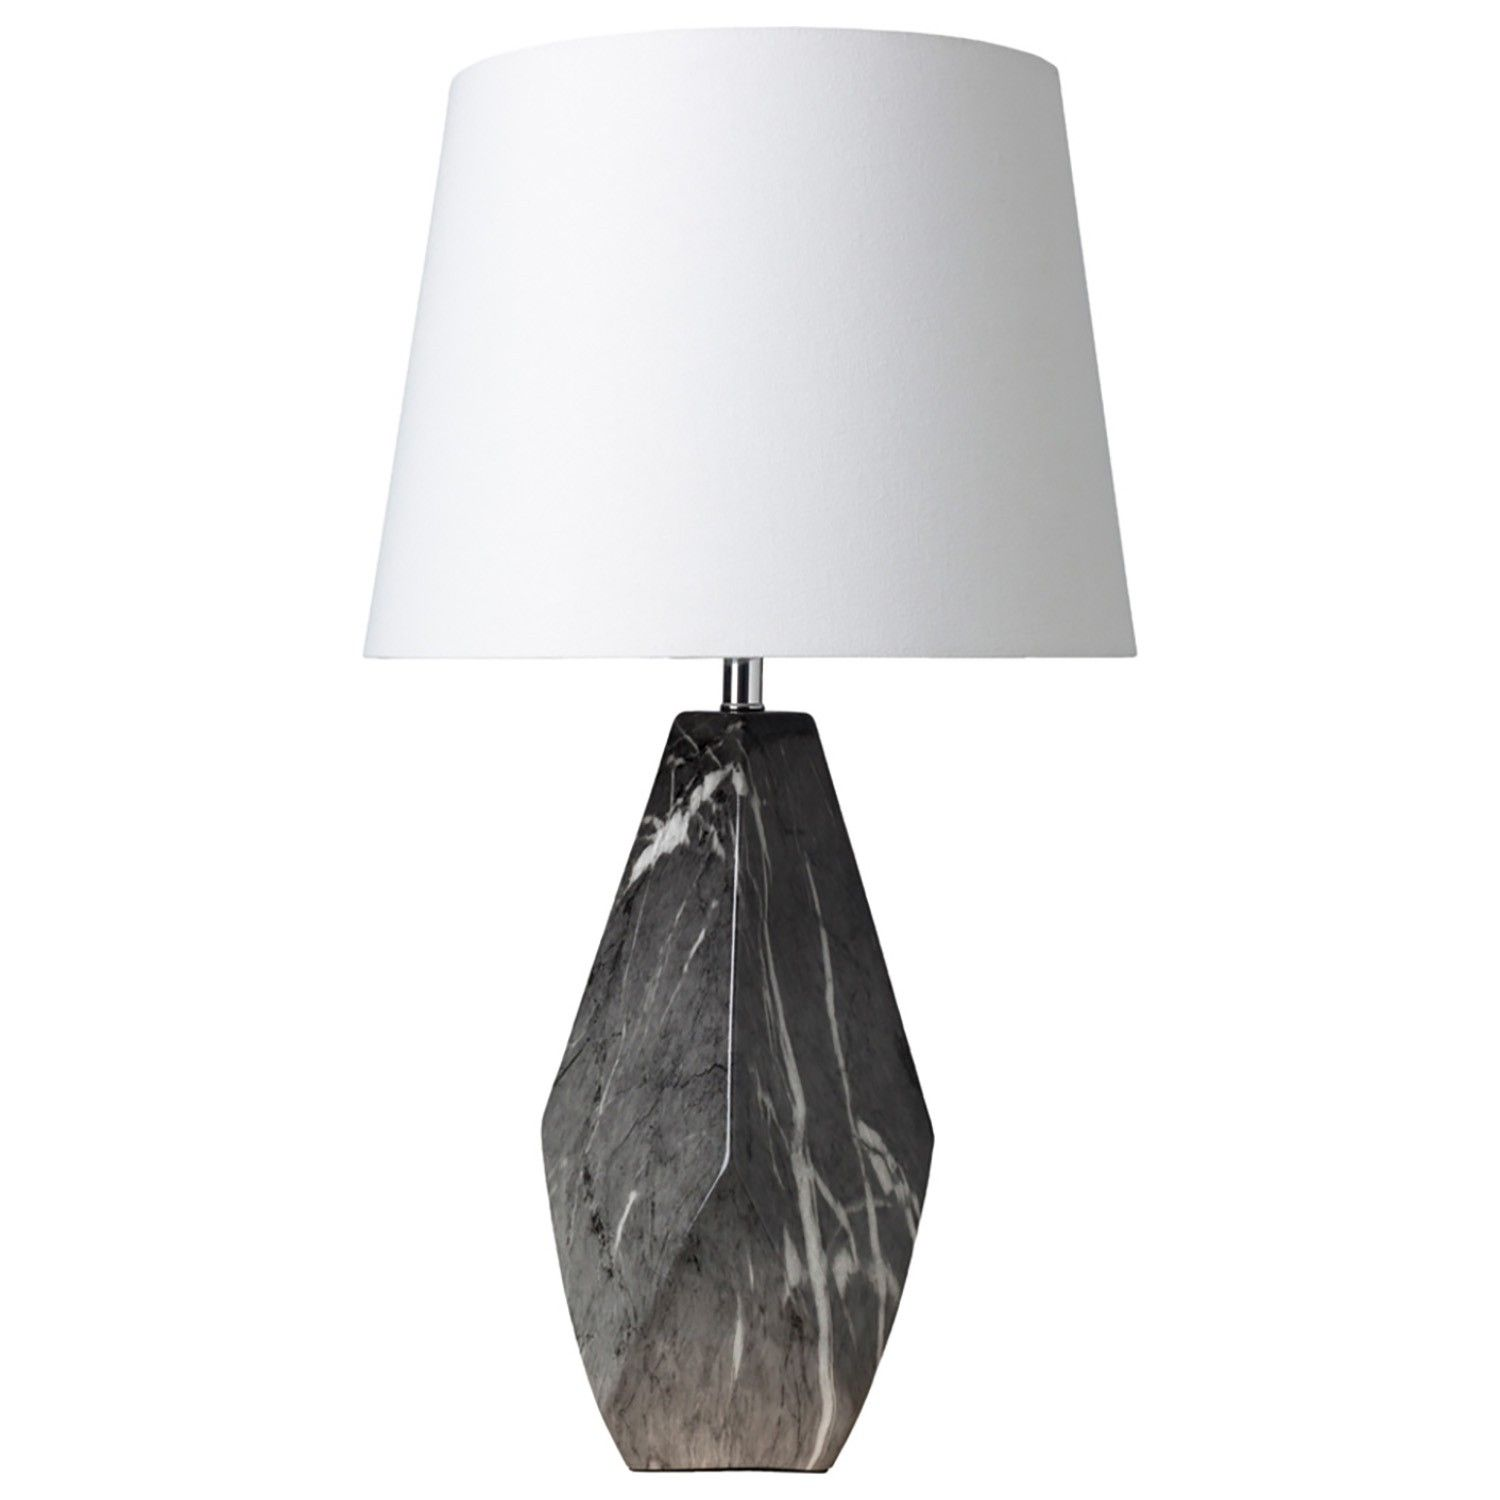 Surya Henley Table Lamp In 2018 Moore Family Room Pinterest 3 Way Switch Light Bulb Marbled Ceramic Body White Linen Shade Metal Iron Finial Cord Length 6 Type Number Of Bulbs 1 Wattage 100 W Ul Cul Certified